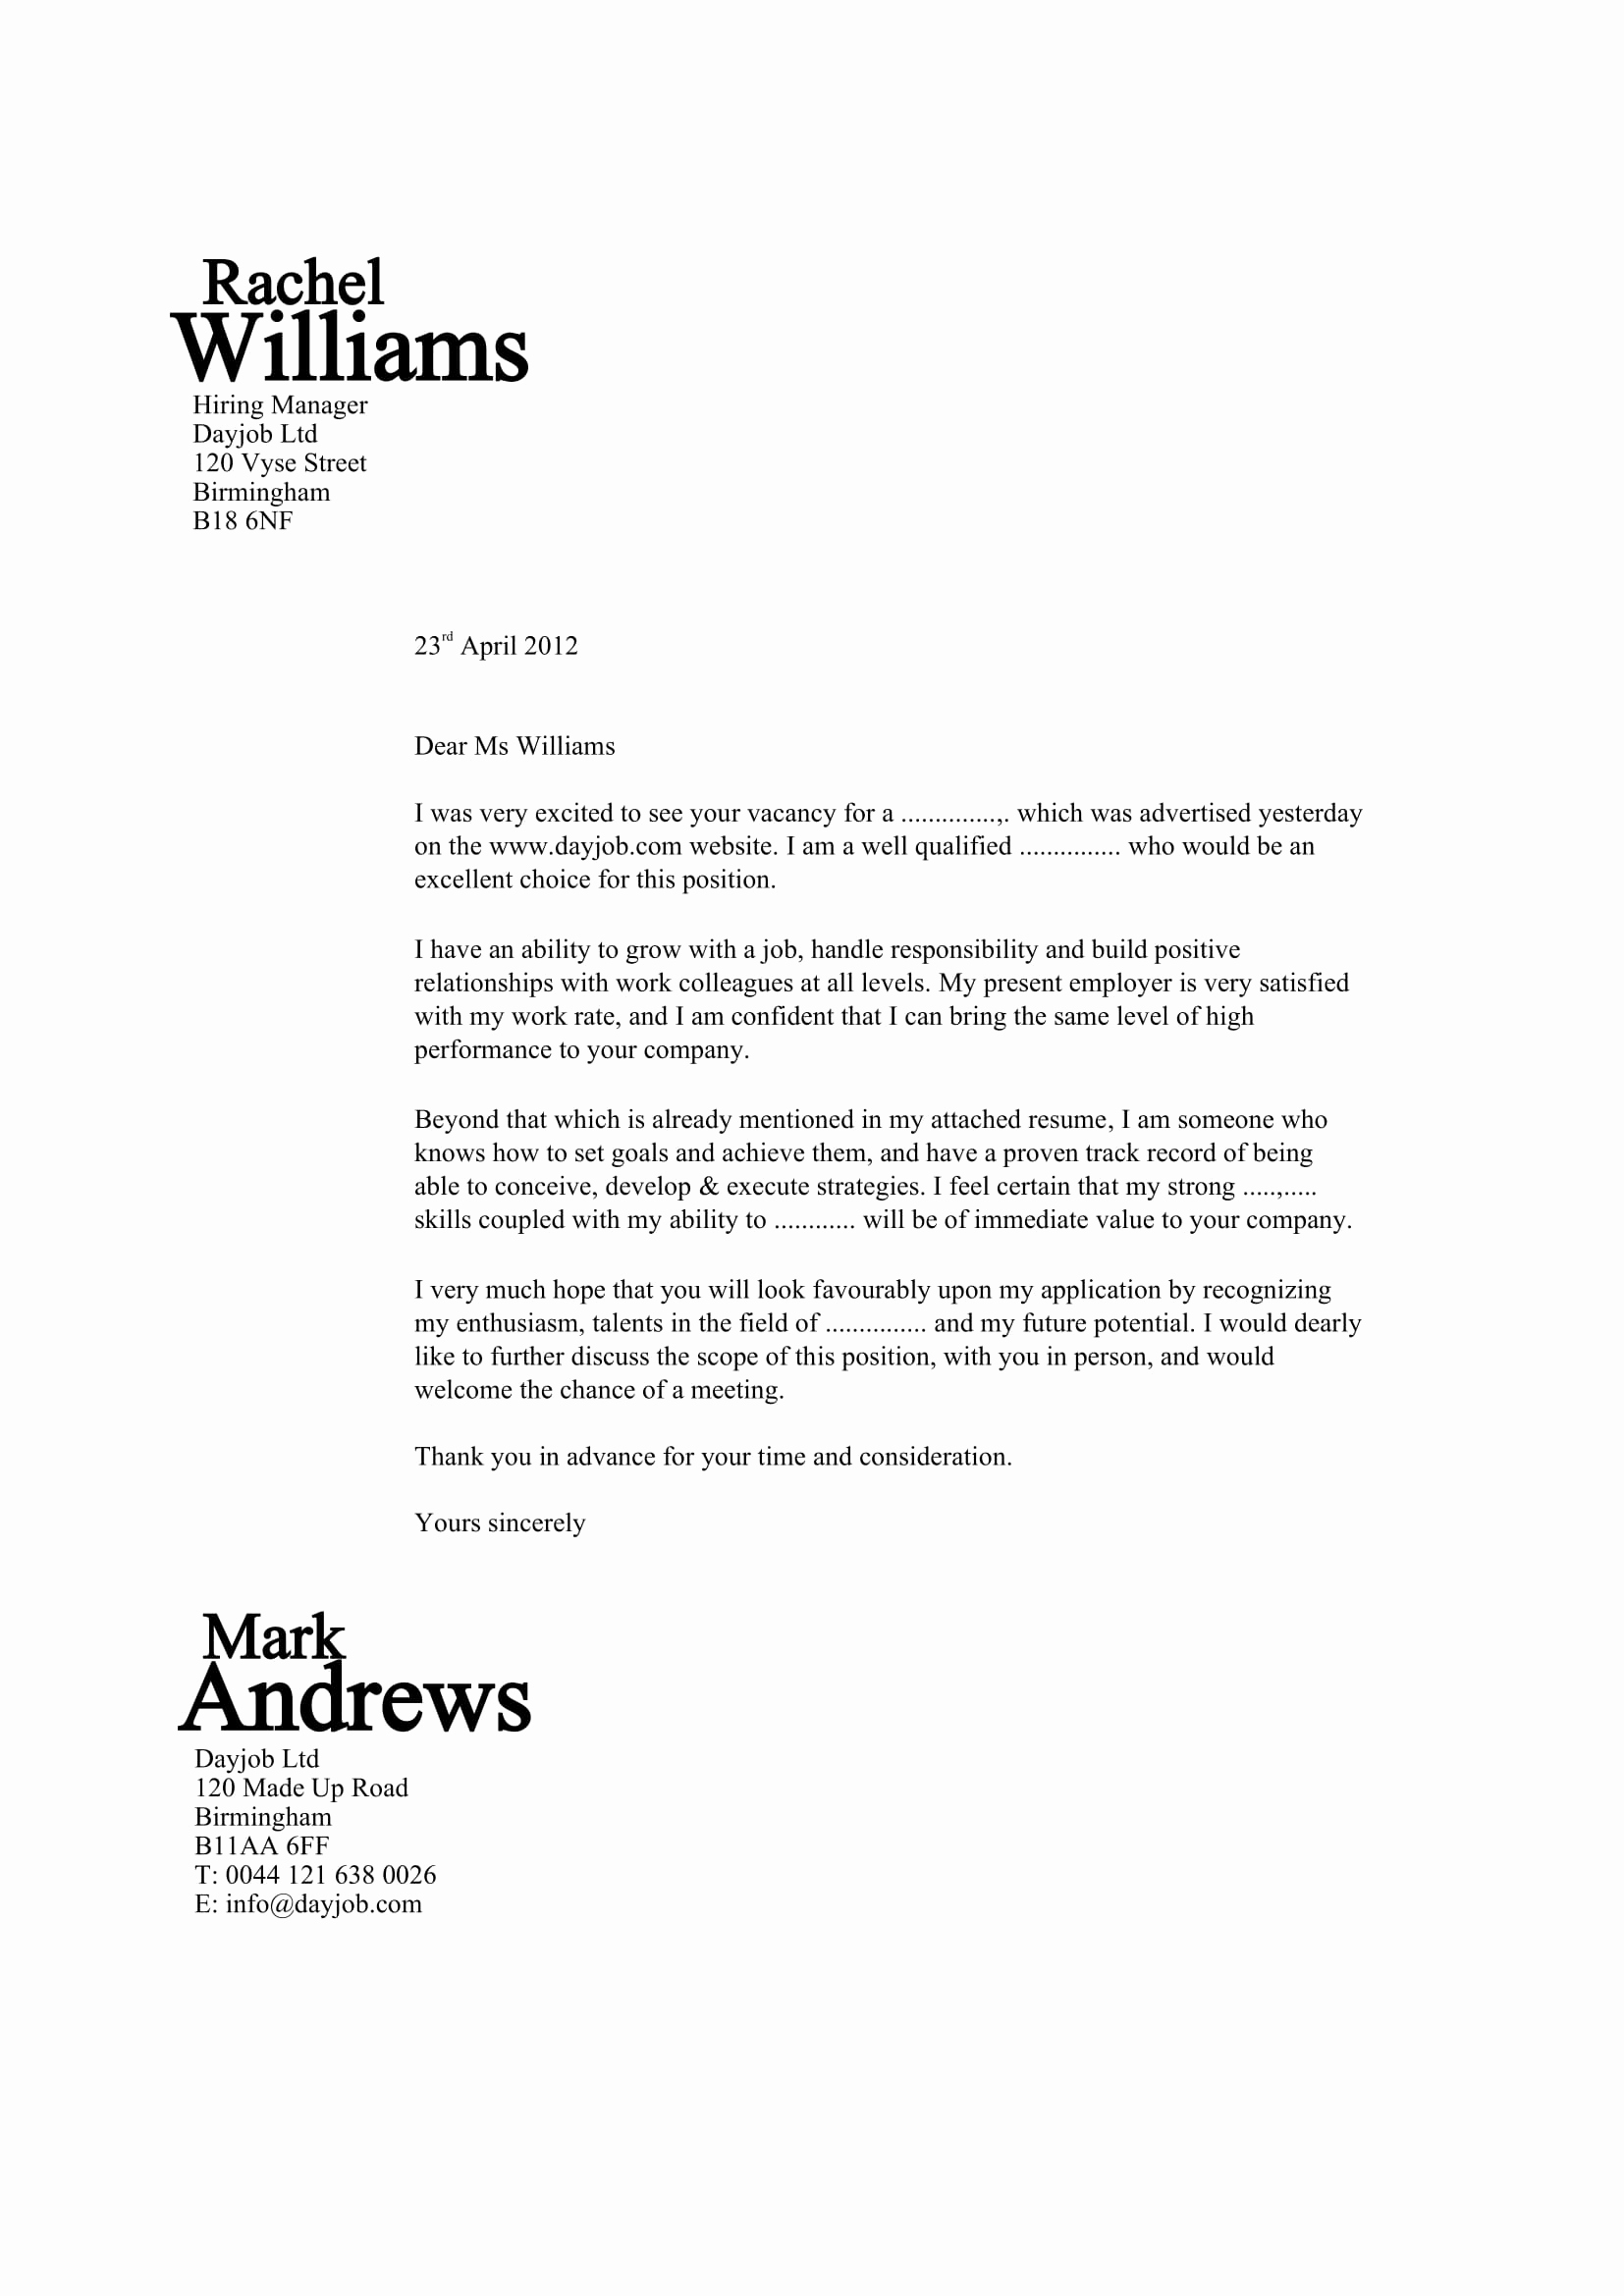 Cover Letter Template Doc Unique 32 Best Sample Cover Letter Examples for Job Applicants